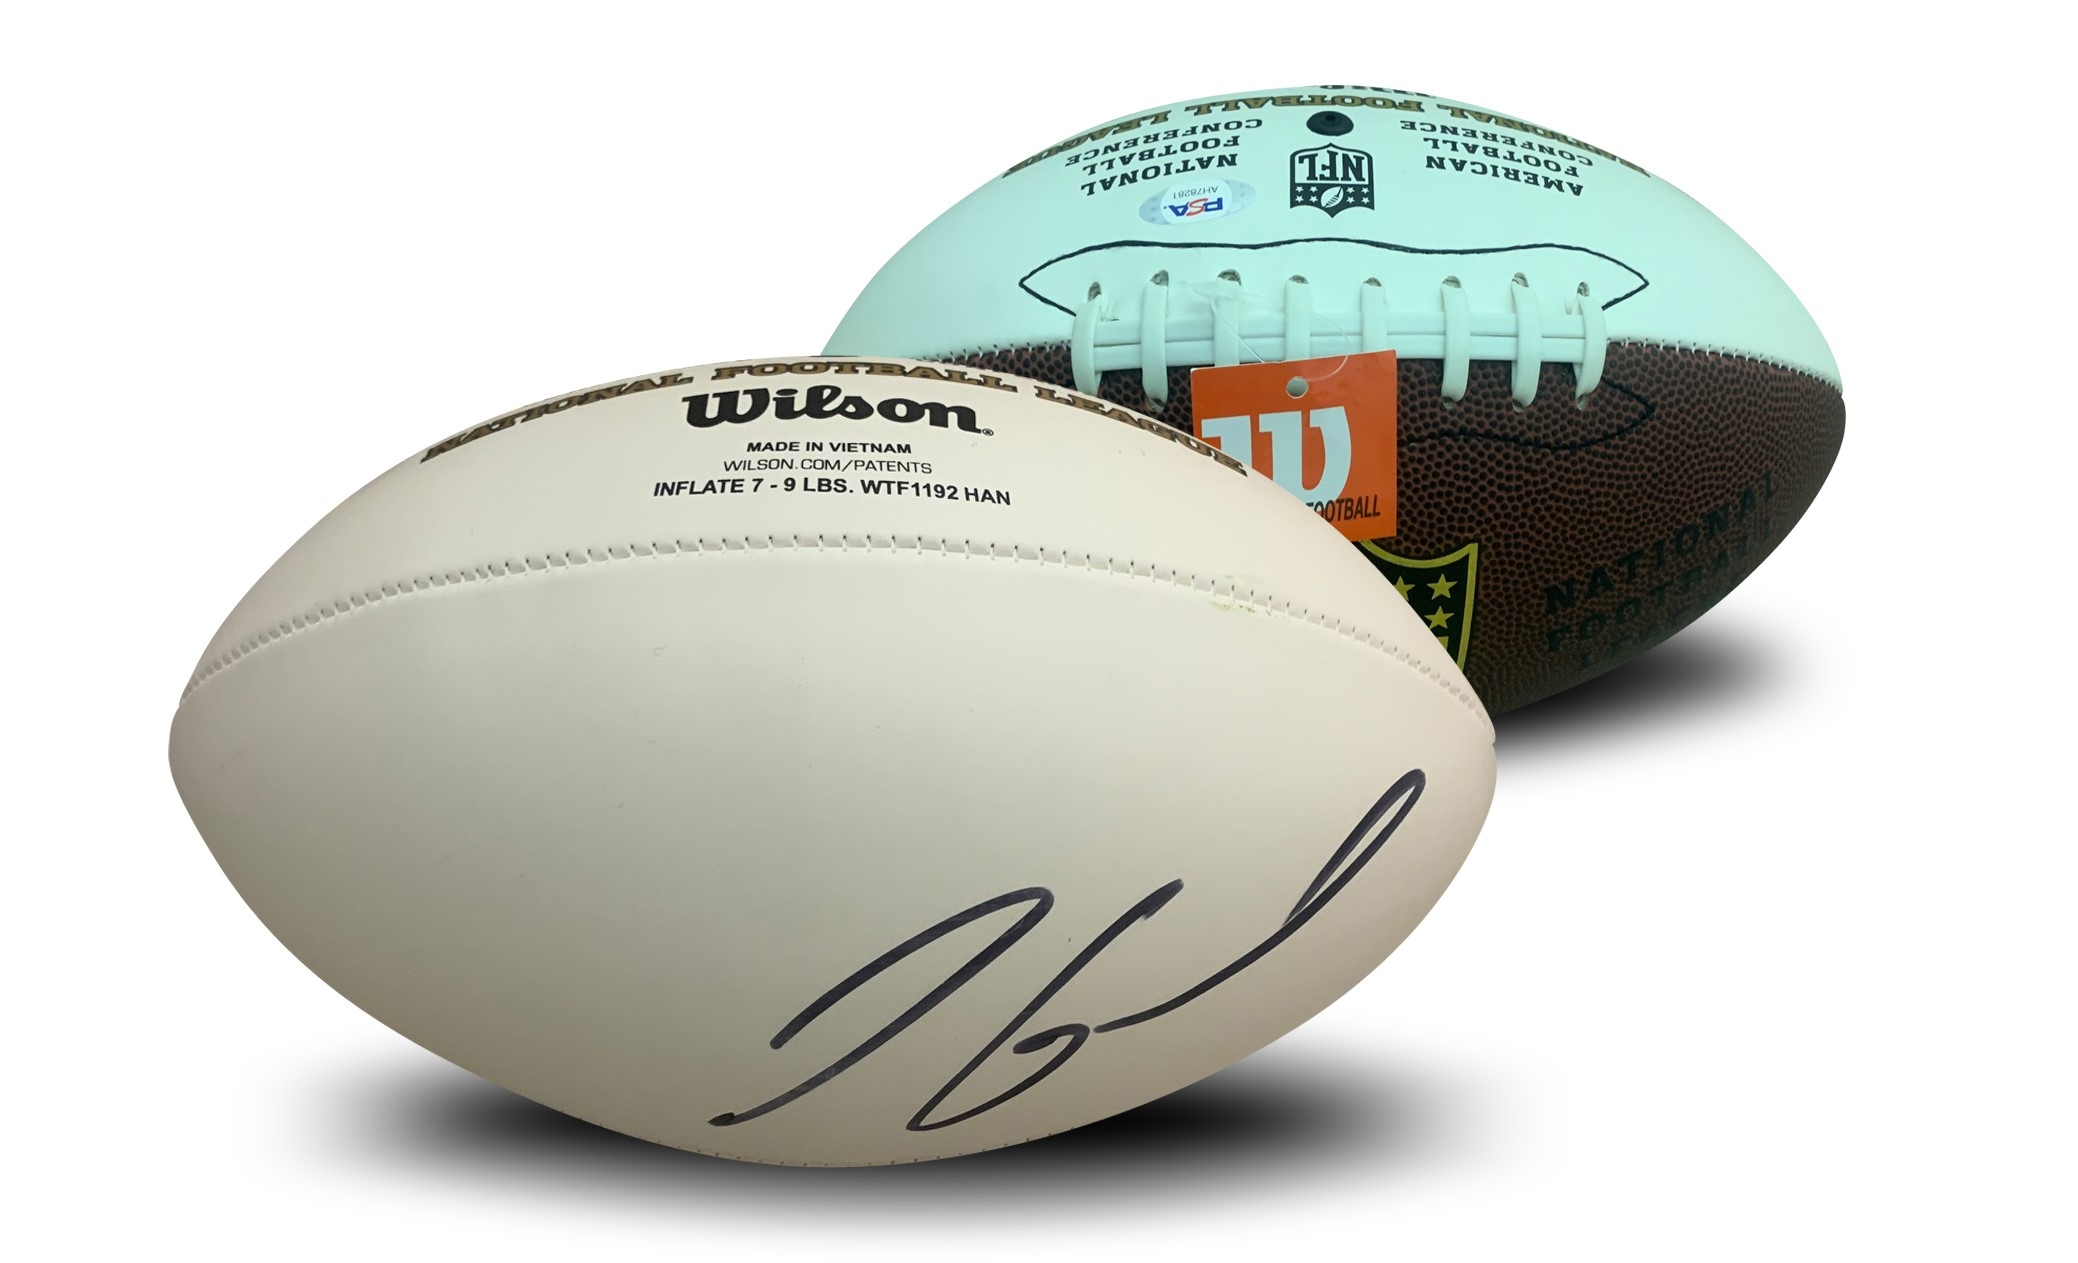 Jimmy Garoppolo Autographed San Francisco 49ers NFL Signed Football PSA DNA COA 49ers starting quarterback Jimmy Garoppolo has autographed this officially licensed NFL replica white panel football.  Autograph is authenticated by PSA/DNA, the world's leading authenticator of sports autographs. Comes with their unique sticker # fixed to the item and verified on their website. Also, comes with their certificate of authenticity with same matching #.